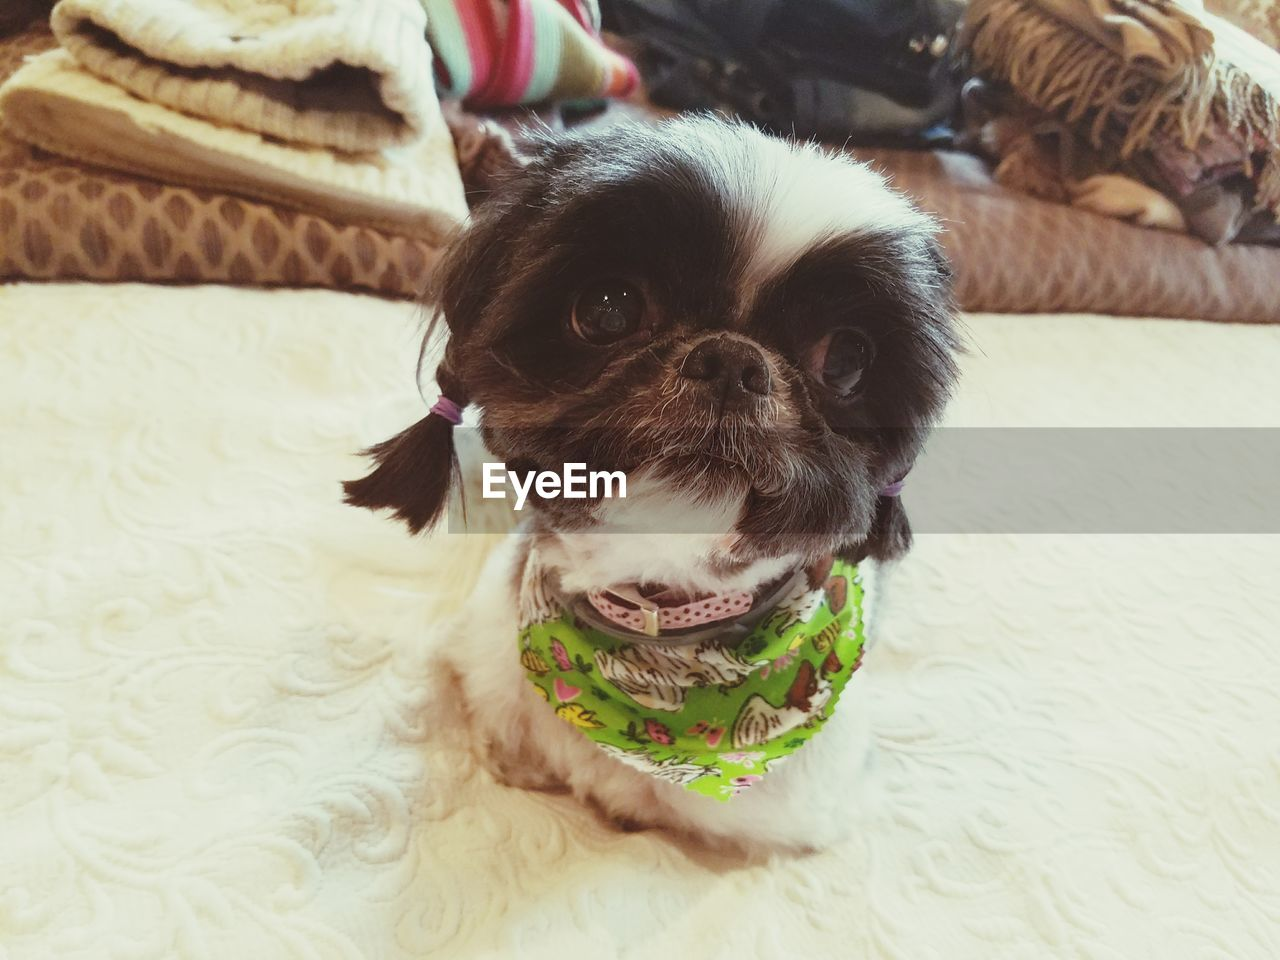 pets, domestic, one animal, canine, dog, domestic animals, mammal, animal, animal themes, vertebrate, indoors, home interior, portrait, no people, looking at camera, furniture, lap dog, close-up, small, focus on foreground, shih tzu, animal head